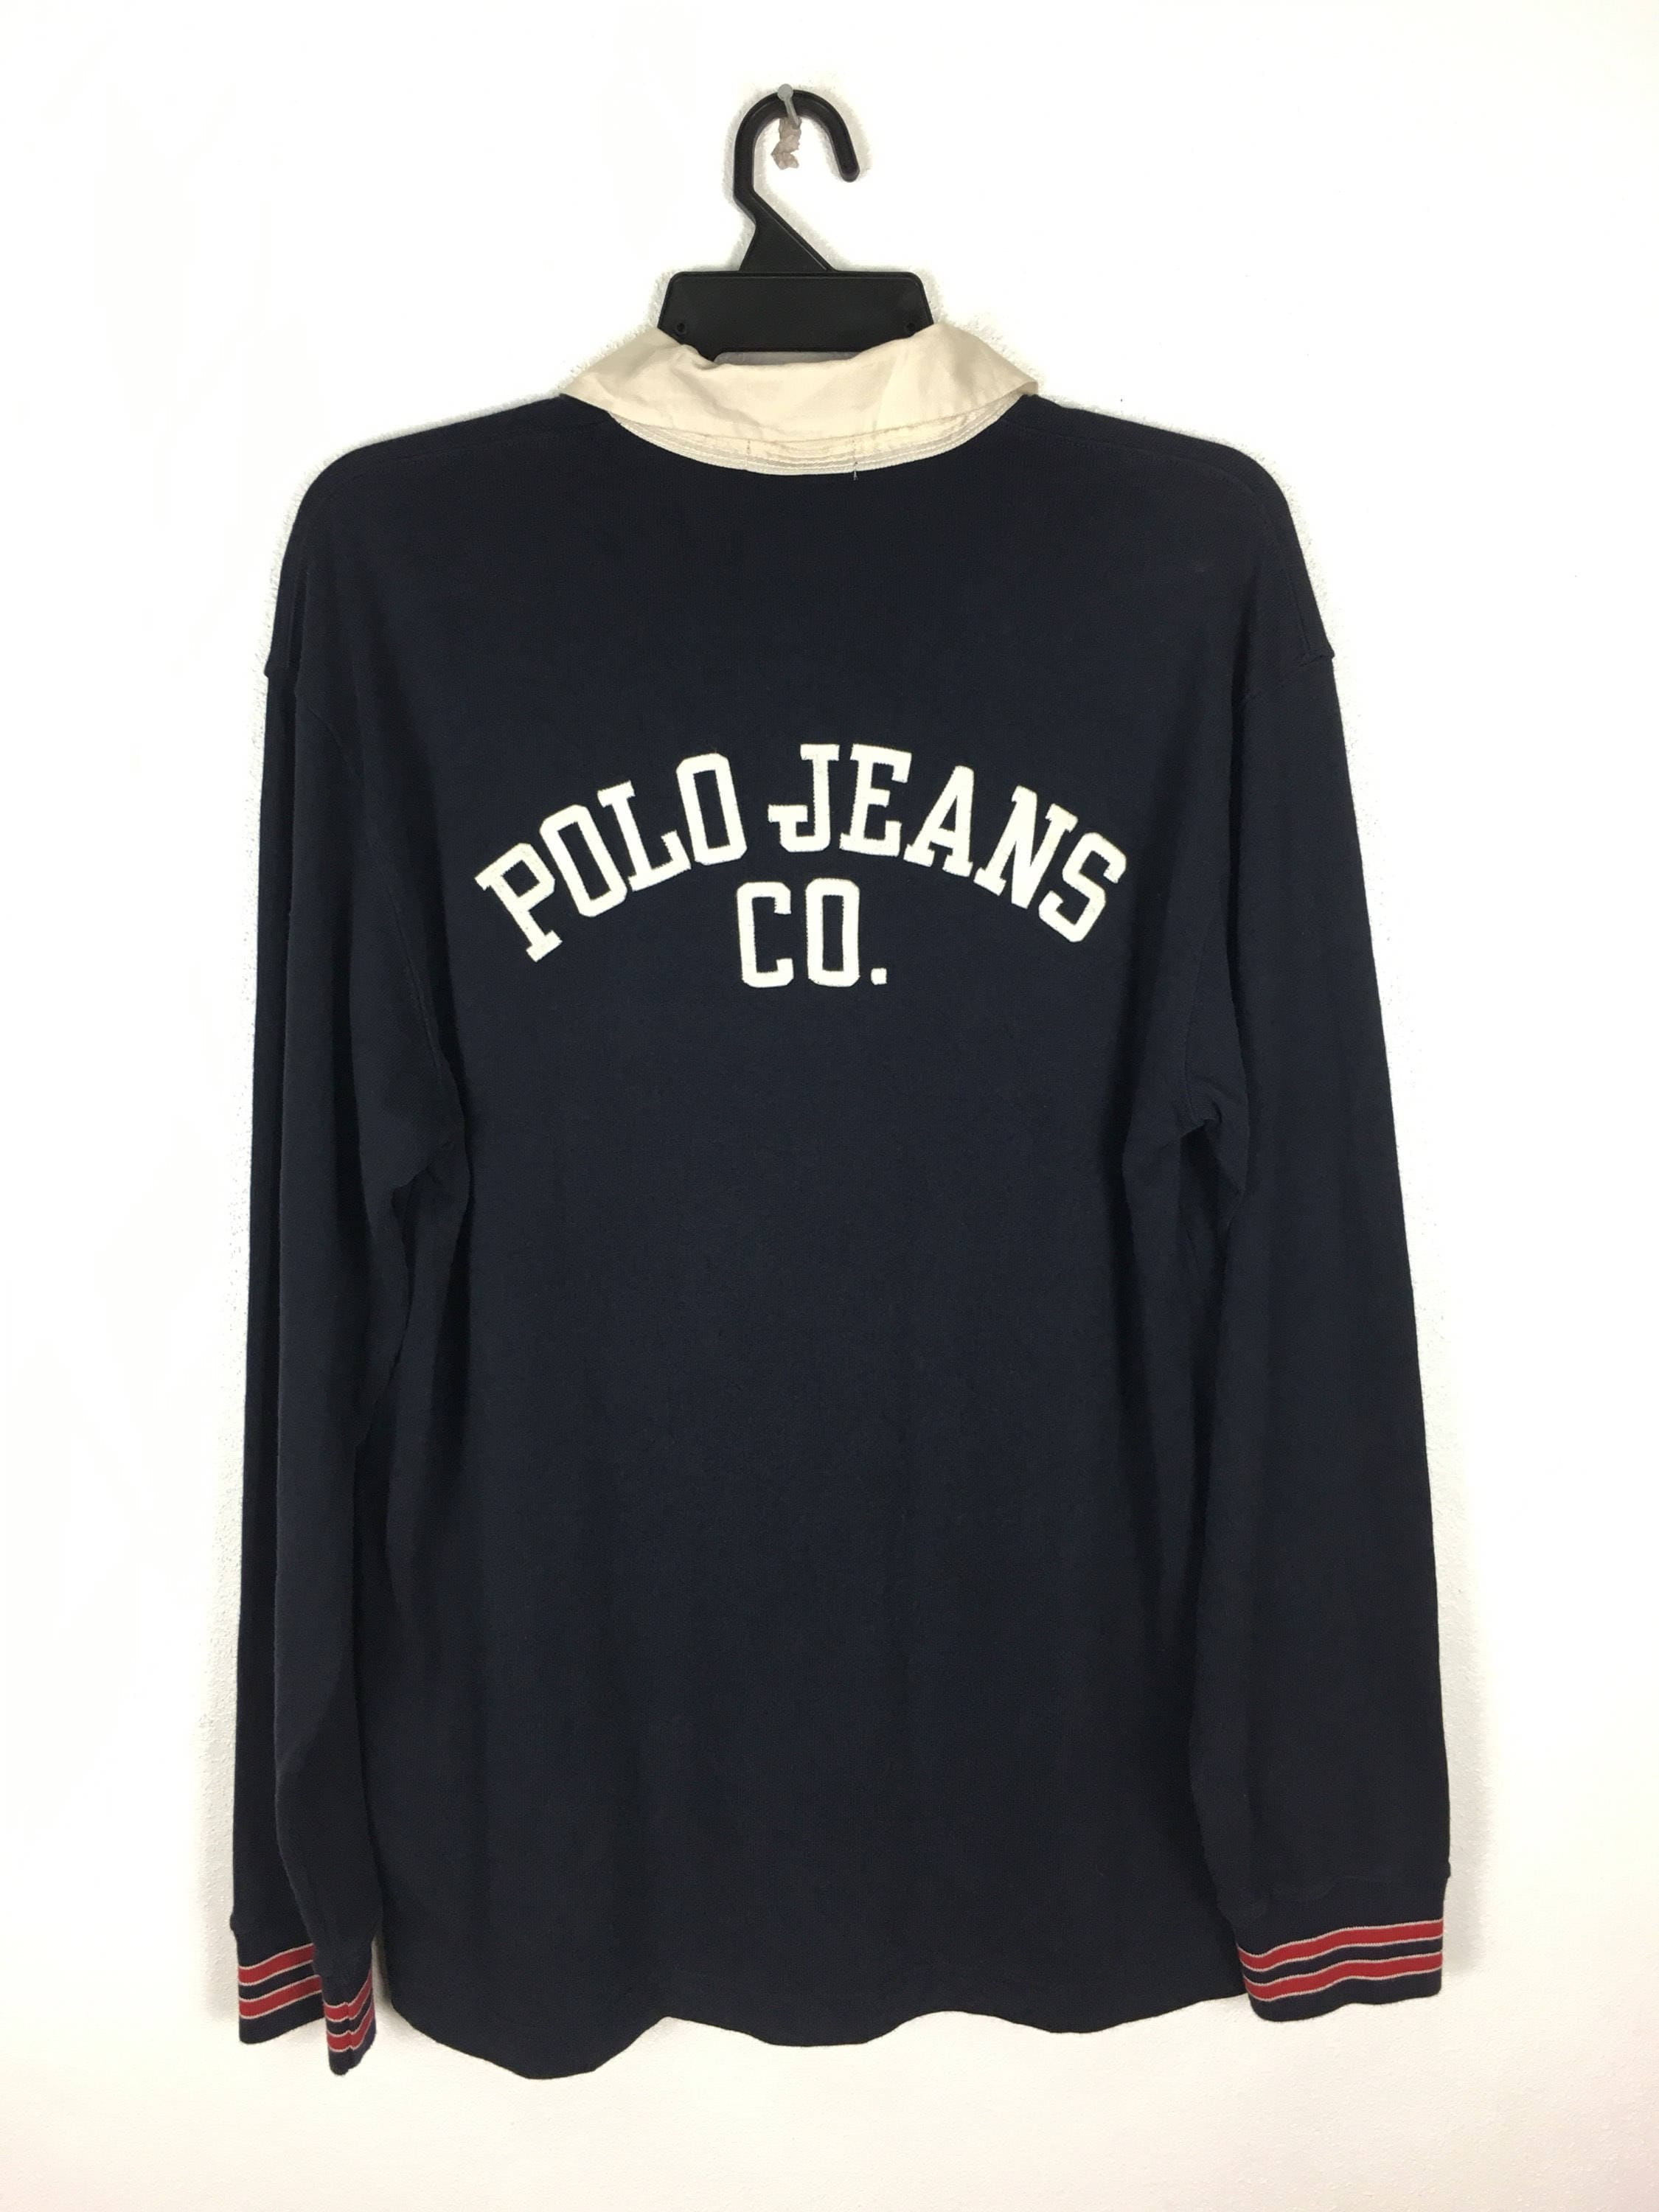 4a3df148d566f7 90 s Polo Jeans Co. Rugby manches sort longues chemise Ralph Lauren sort  manches Out